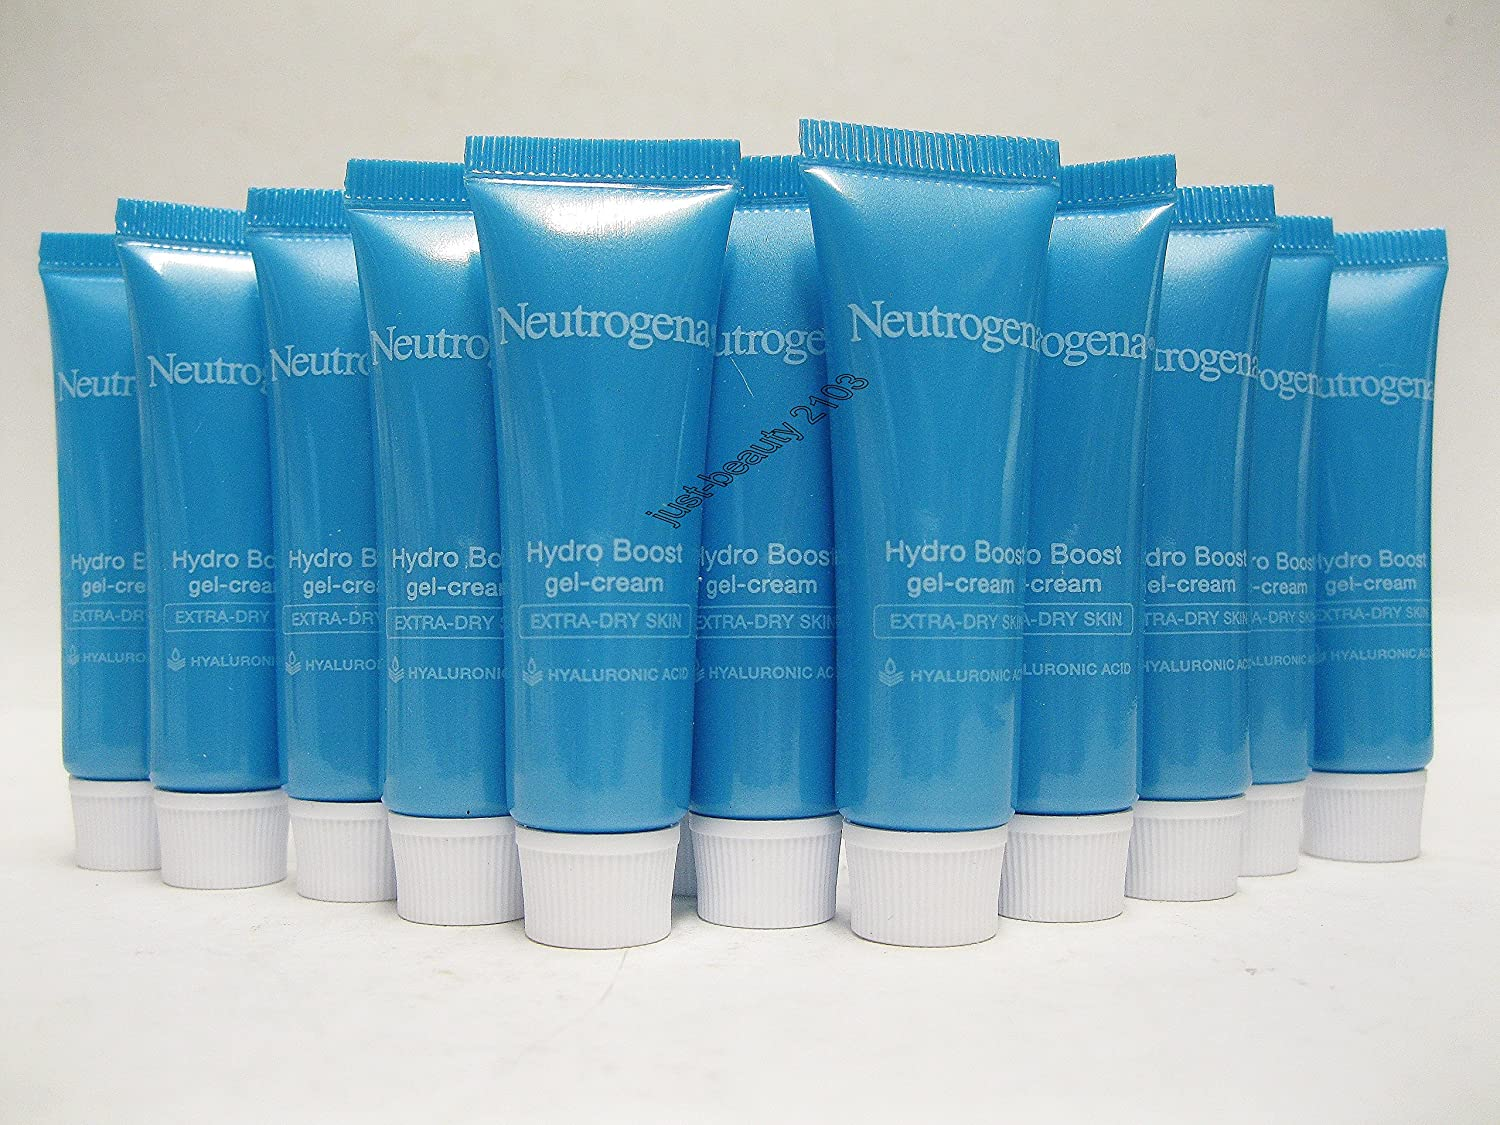 Neutrogena Hydro Boost Gel-Cream, 0 25oz For Neck and Face and Extra Dry  skin(Pack of 15 Tubes)